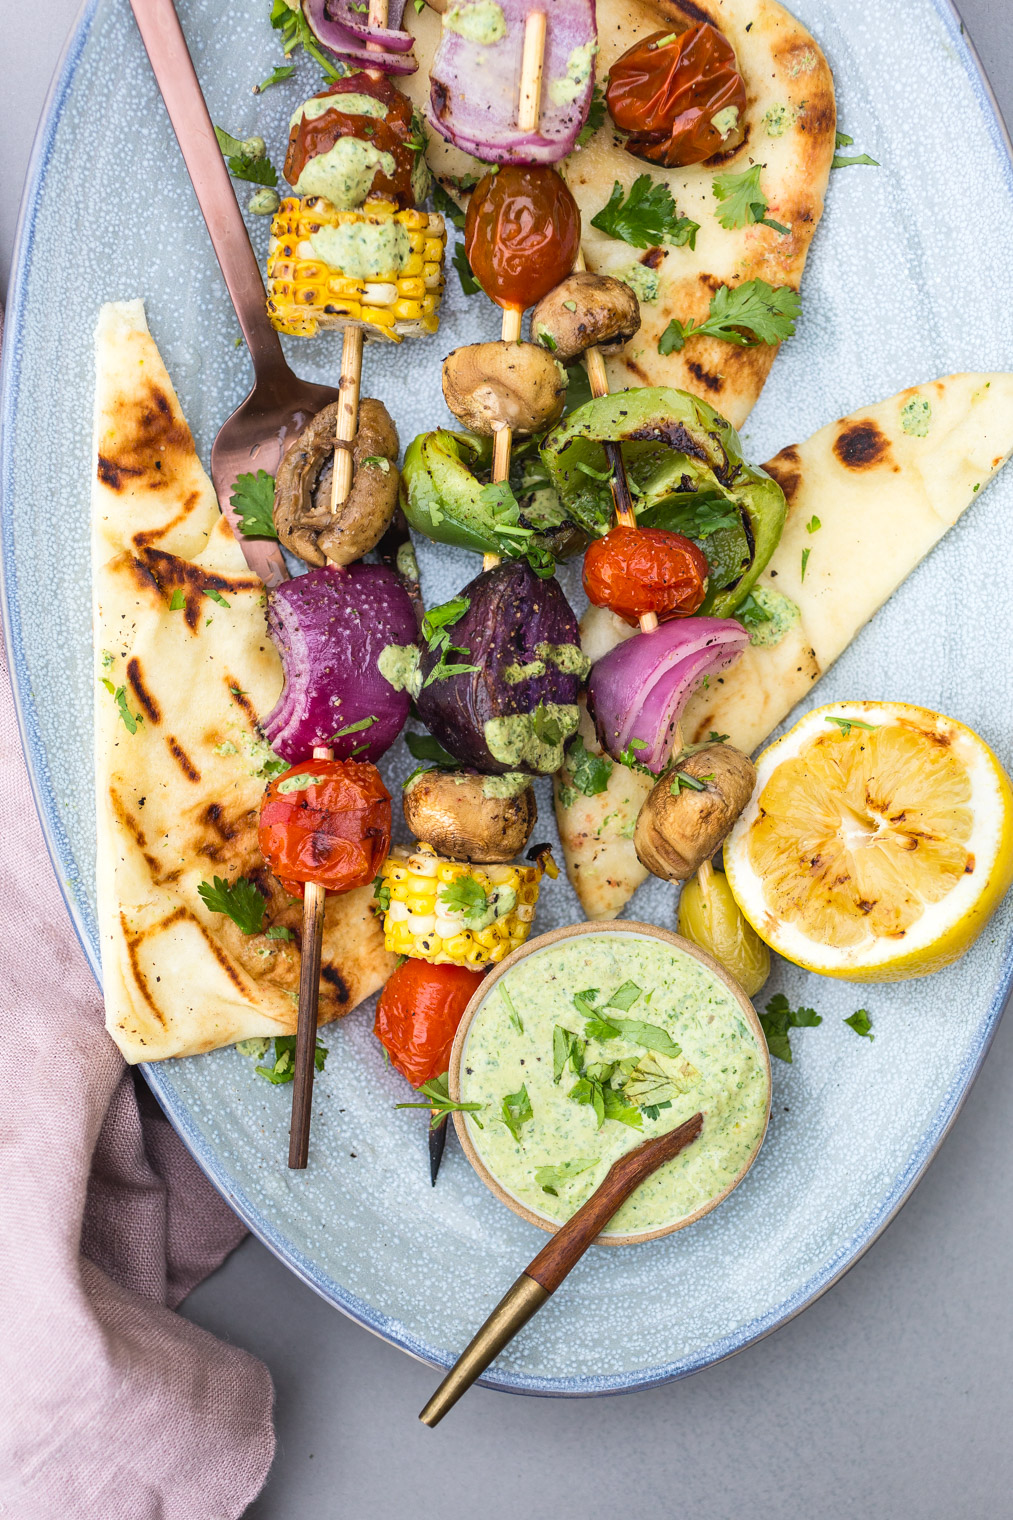 Grilled Veggies with Cilantro Yogurt Sauce & Grilled Pita